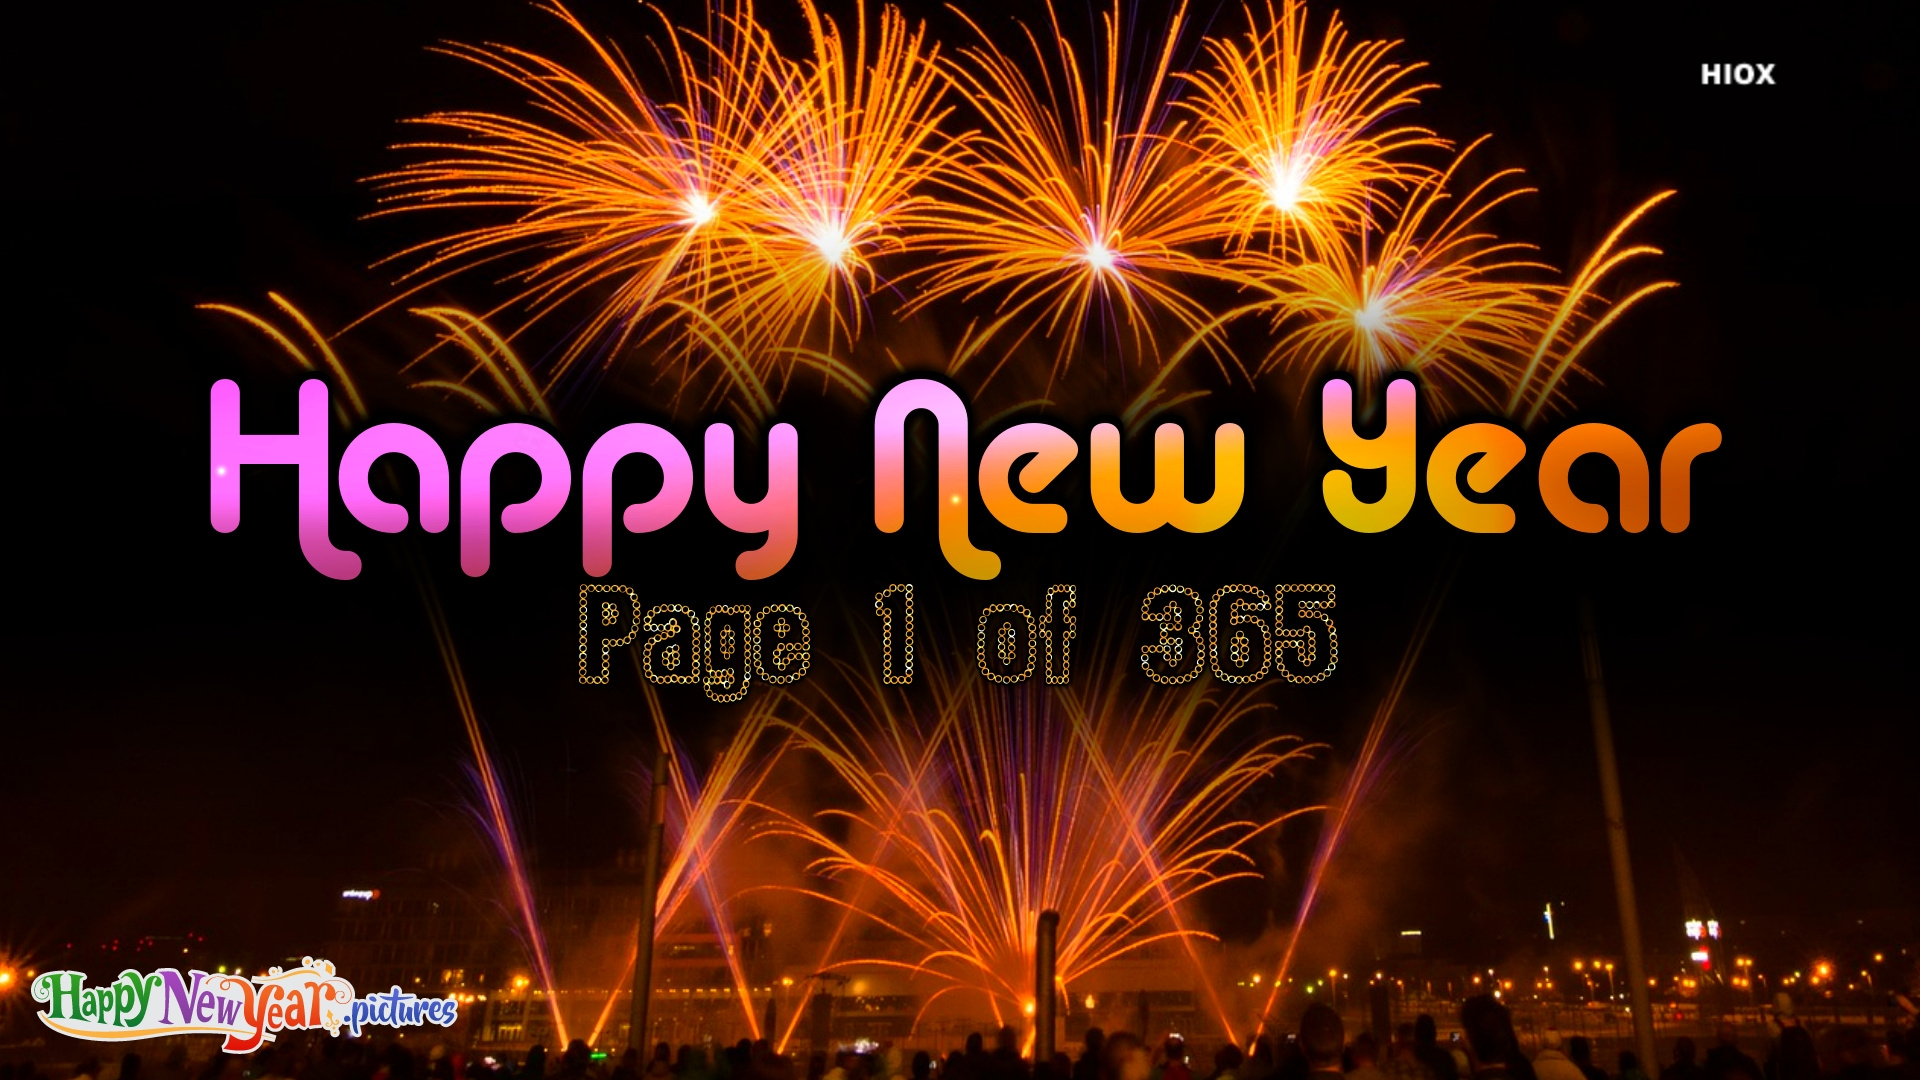 Happy New Year Party wishes